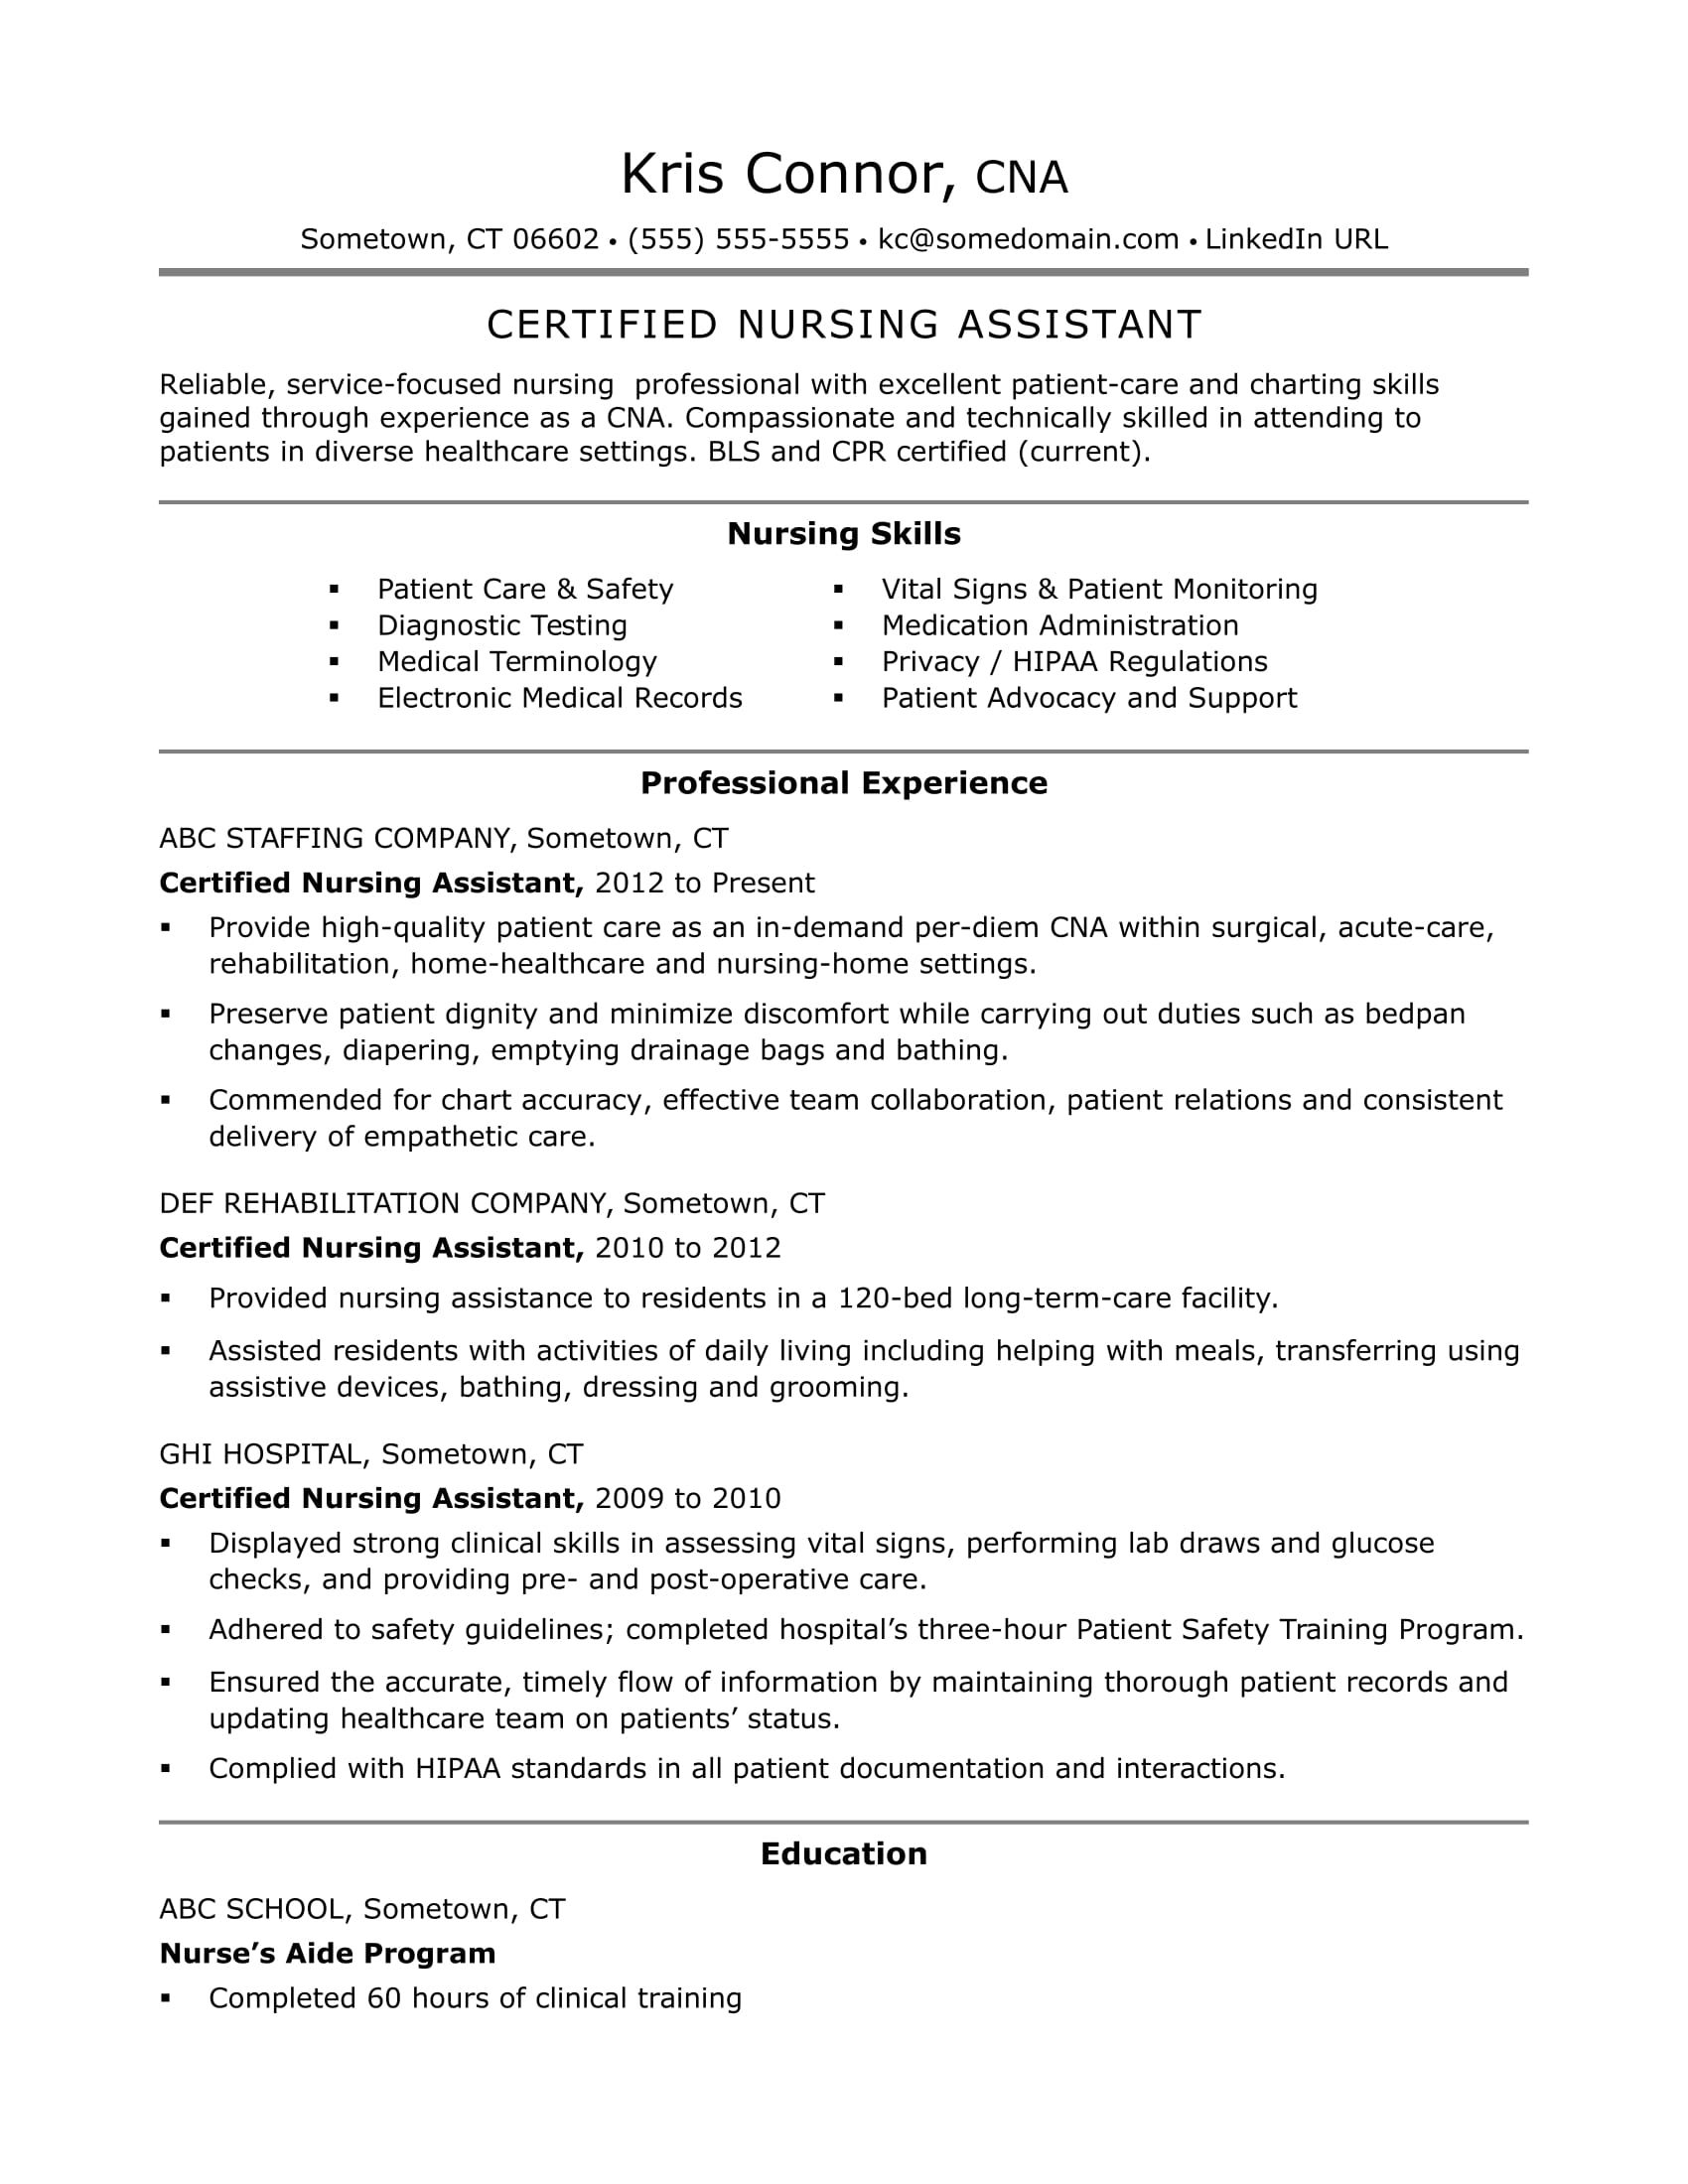 resume Nursing Assistant Resume cna resume examples skills for cnas monster com example